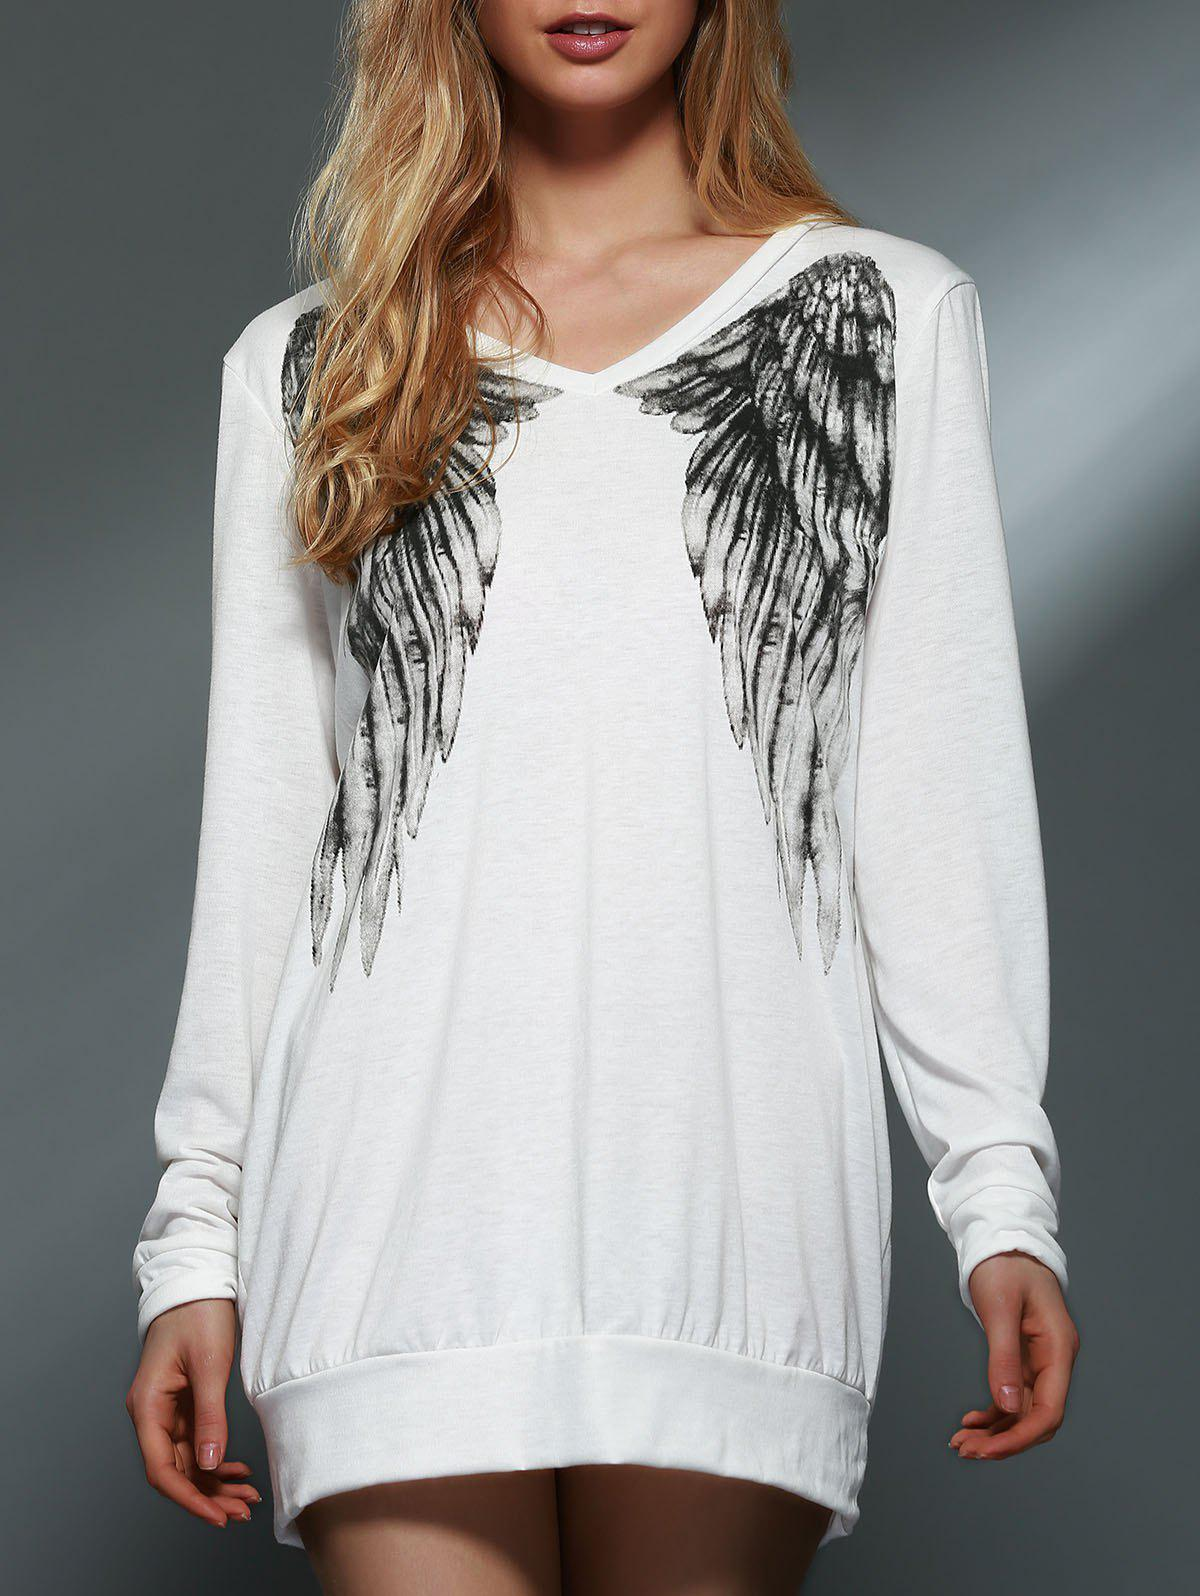 Trendy Back Wing Printed Long Sleeve Pullover Sweatshirt For Women - WHITE L